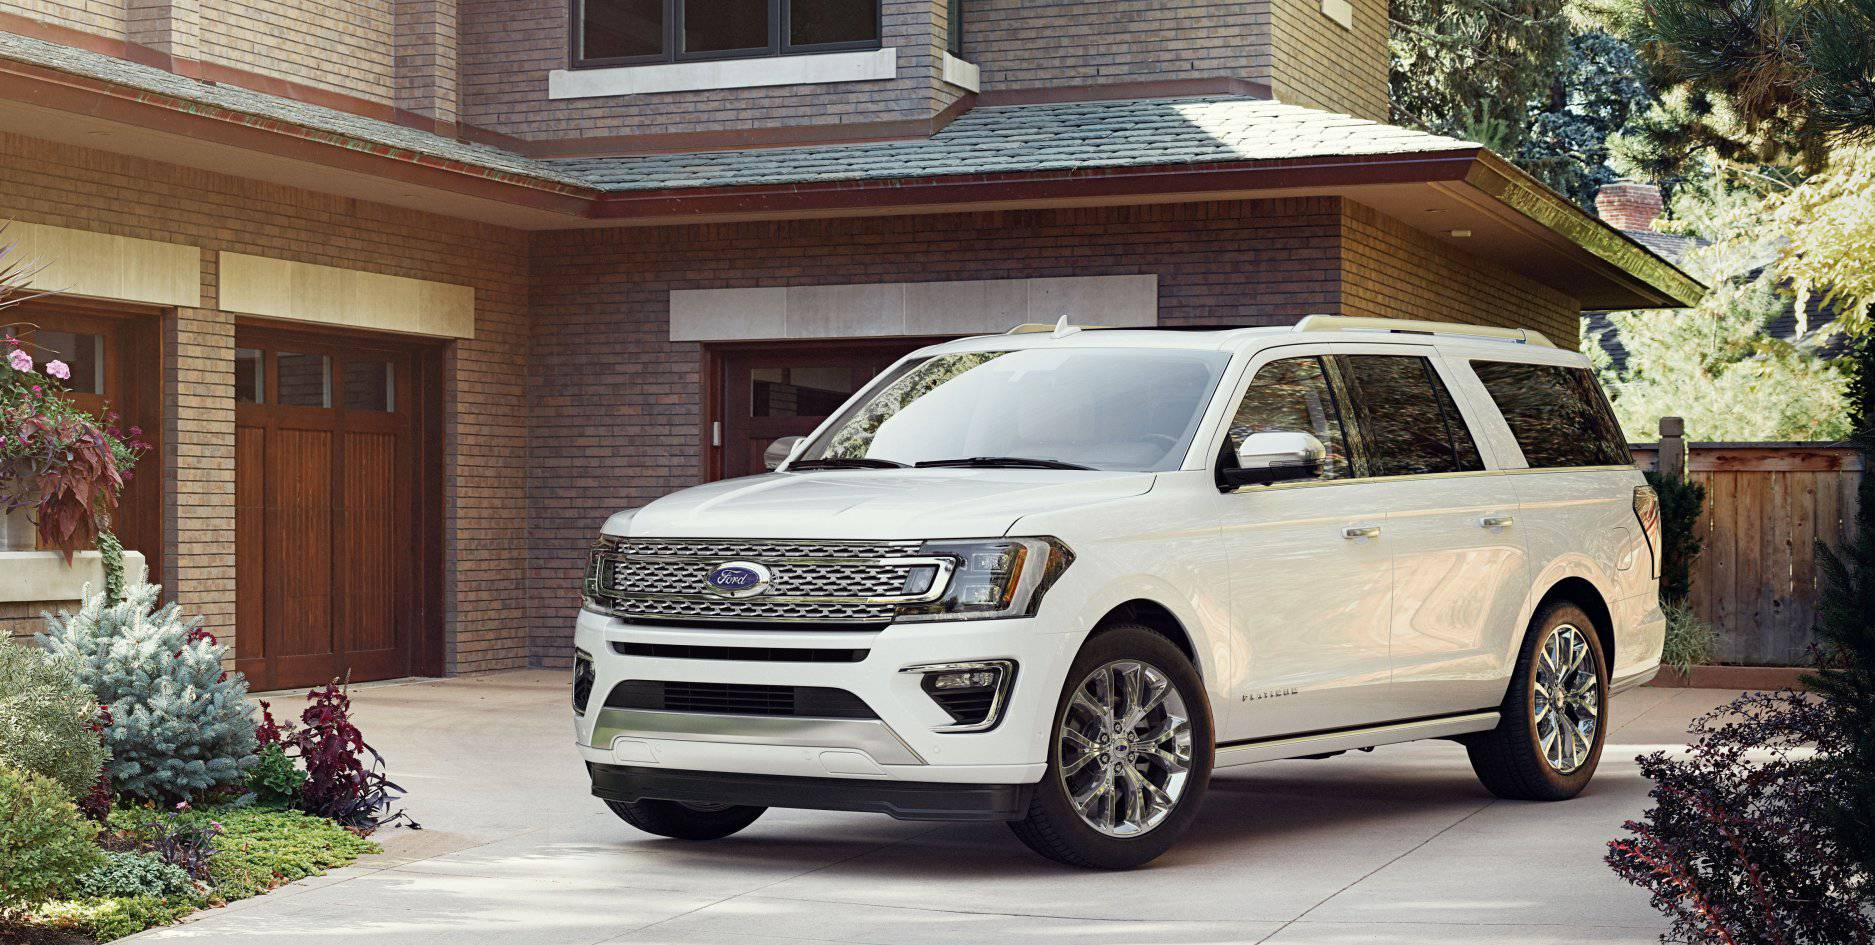 2018 Ford Expedition White Exterior Front View